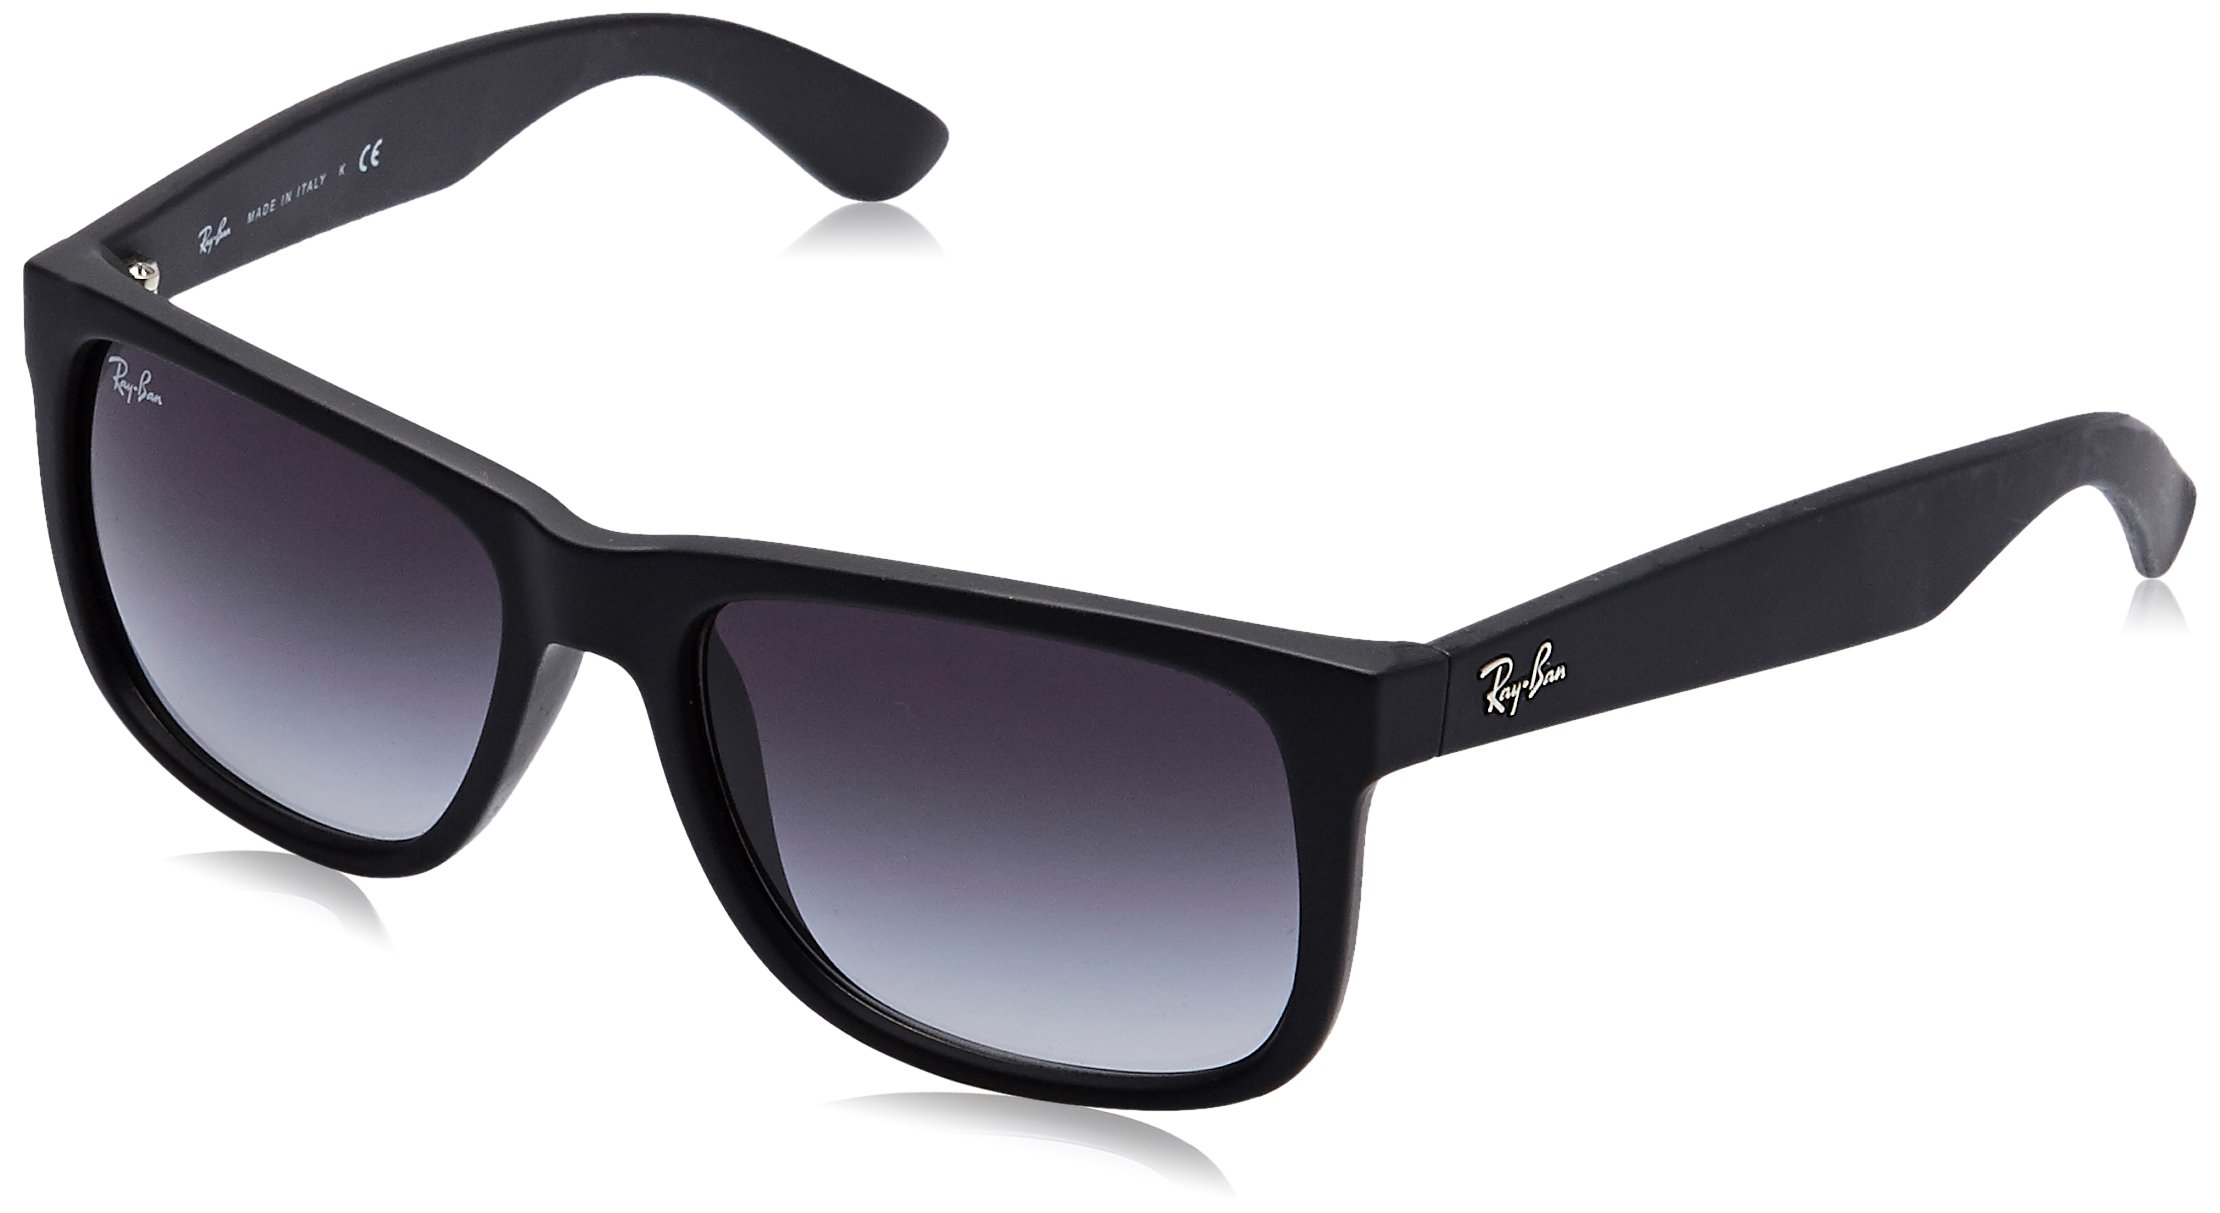 RAY-BAN RB4165 Justin Rectangular Sunglasses, Black Rubber/Grey Gradient, 55 mm by Ray-Ban